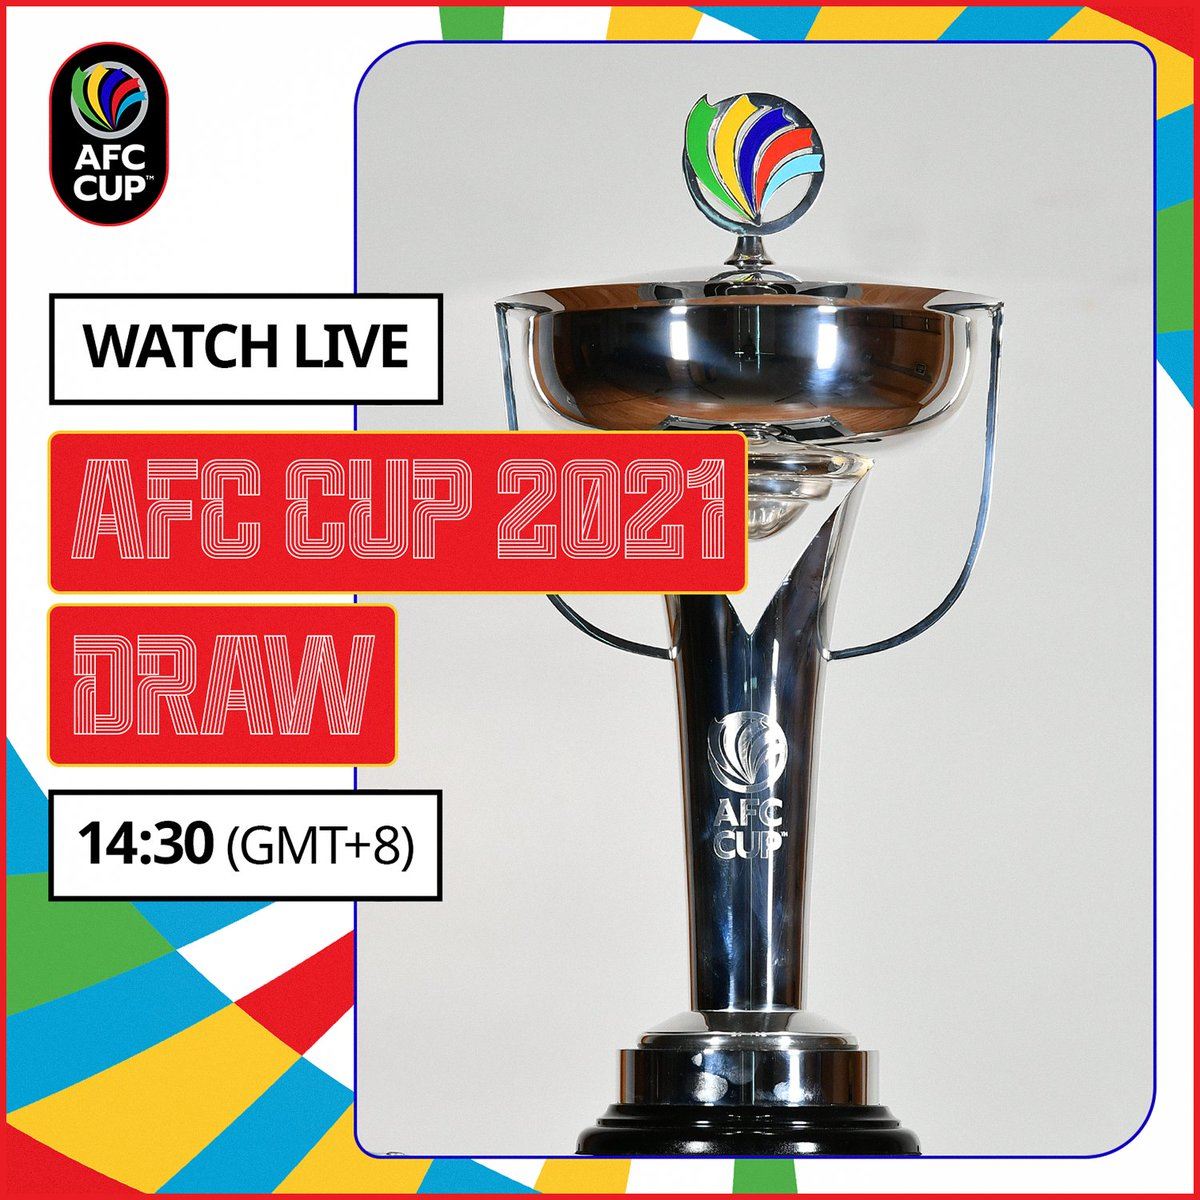 #AFCCup2021 Group Stage draw is today. Watch it live!  ⏰ 14:30 (GMT+8) 📺   Also available on Facebook and Instagram.